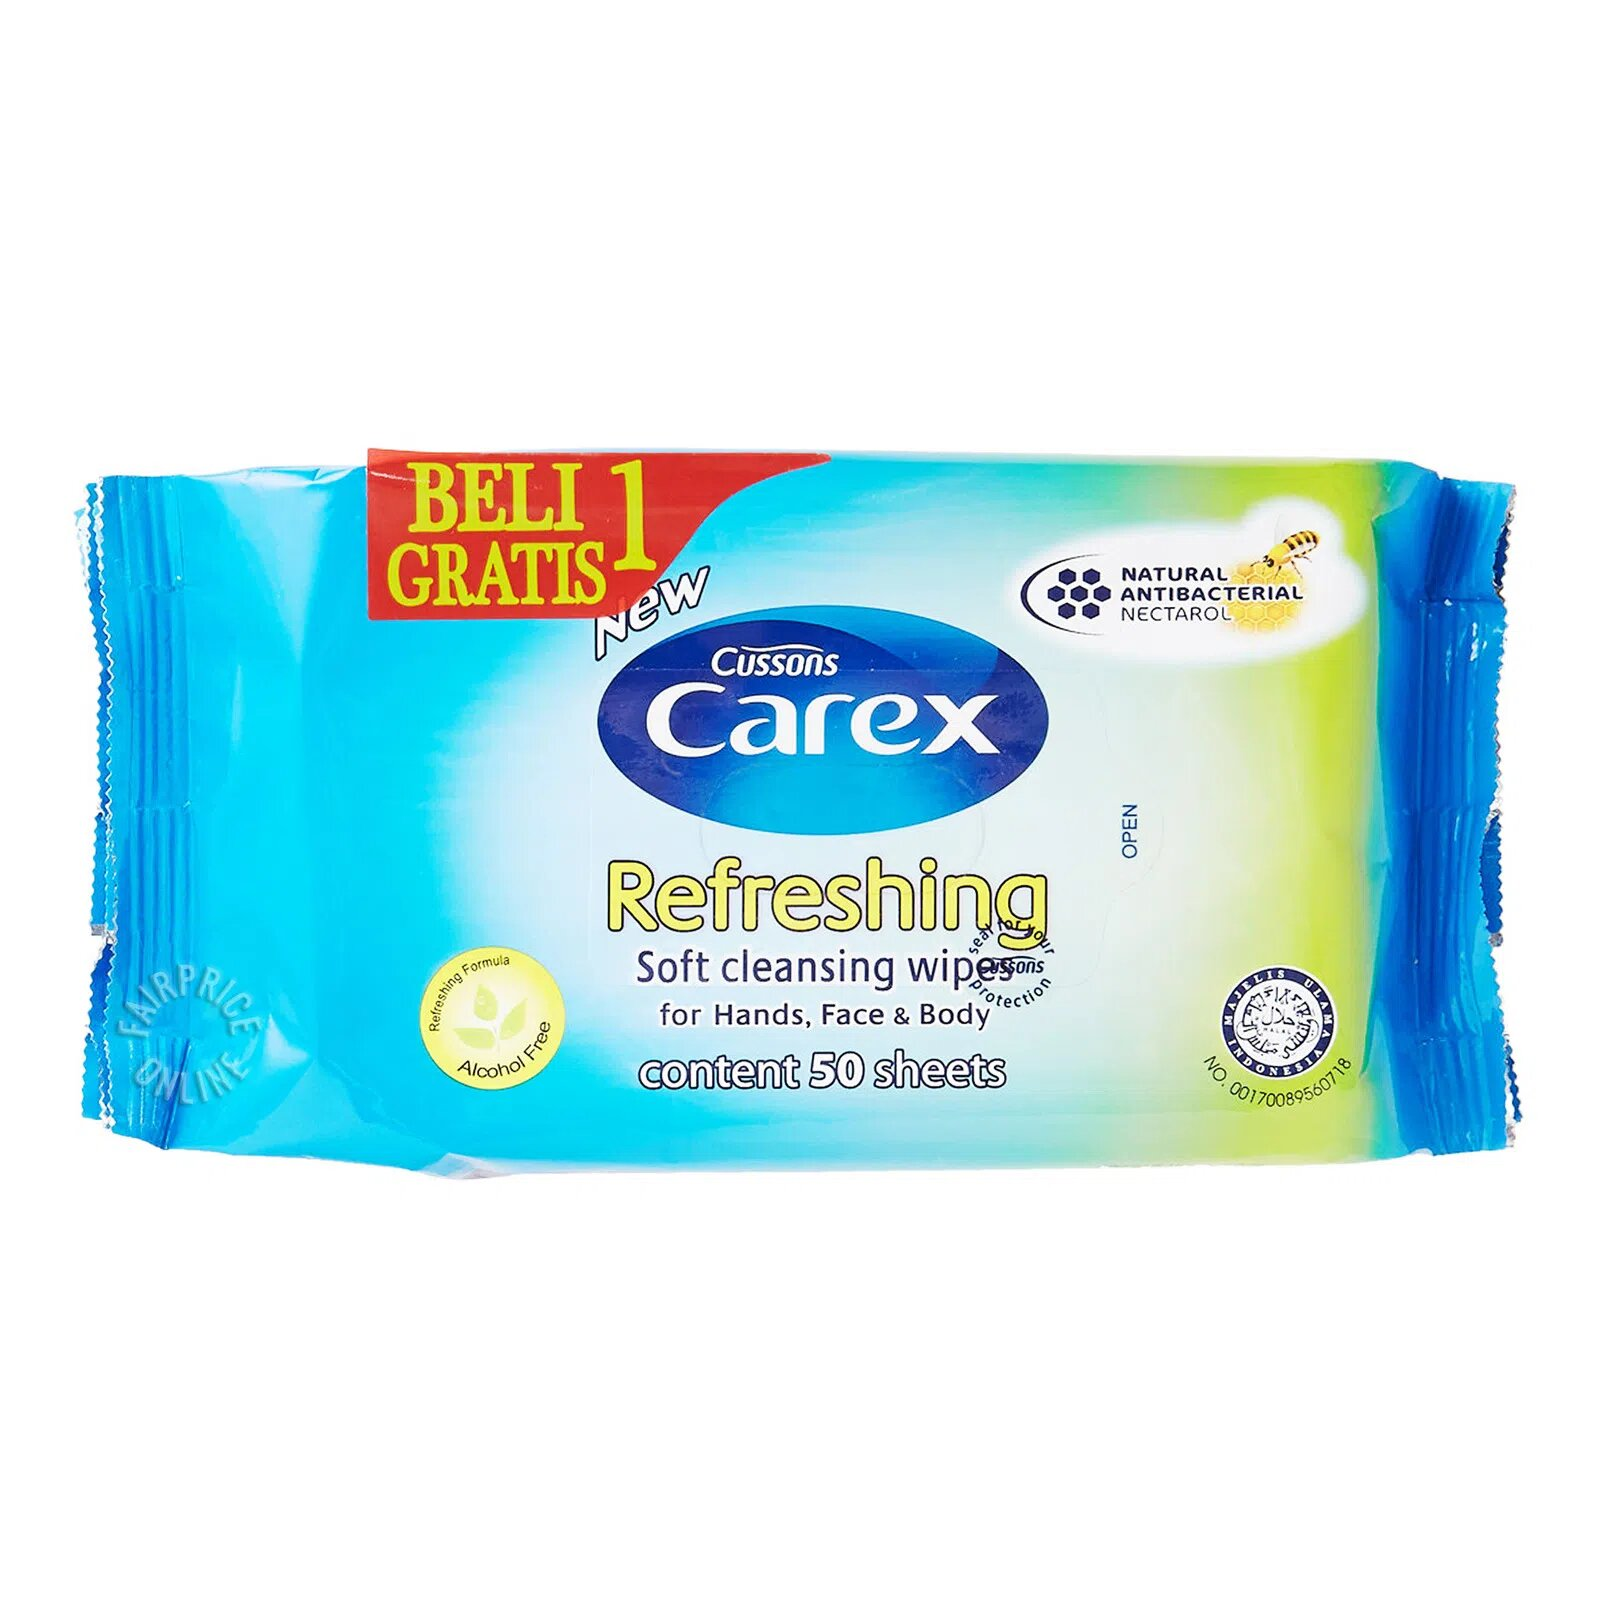 Cussons Carex Soft Cleansing Wipes - Refreshing